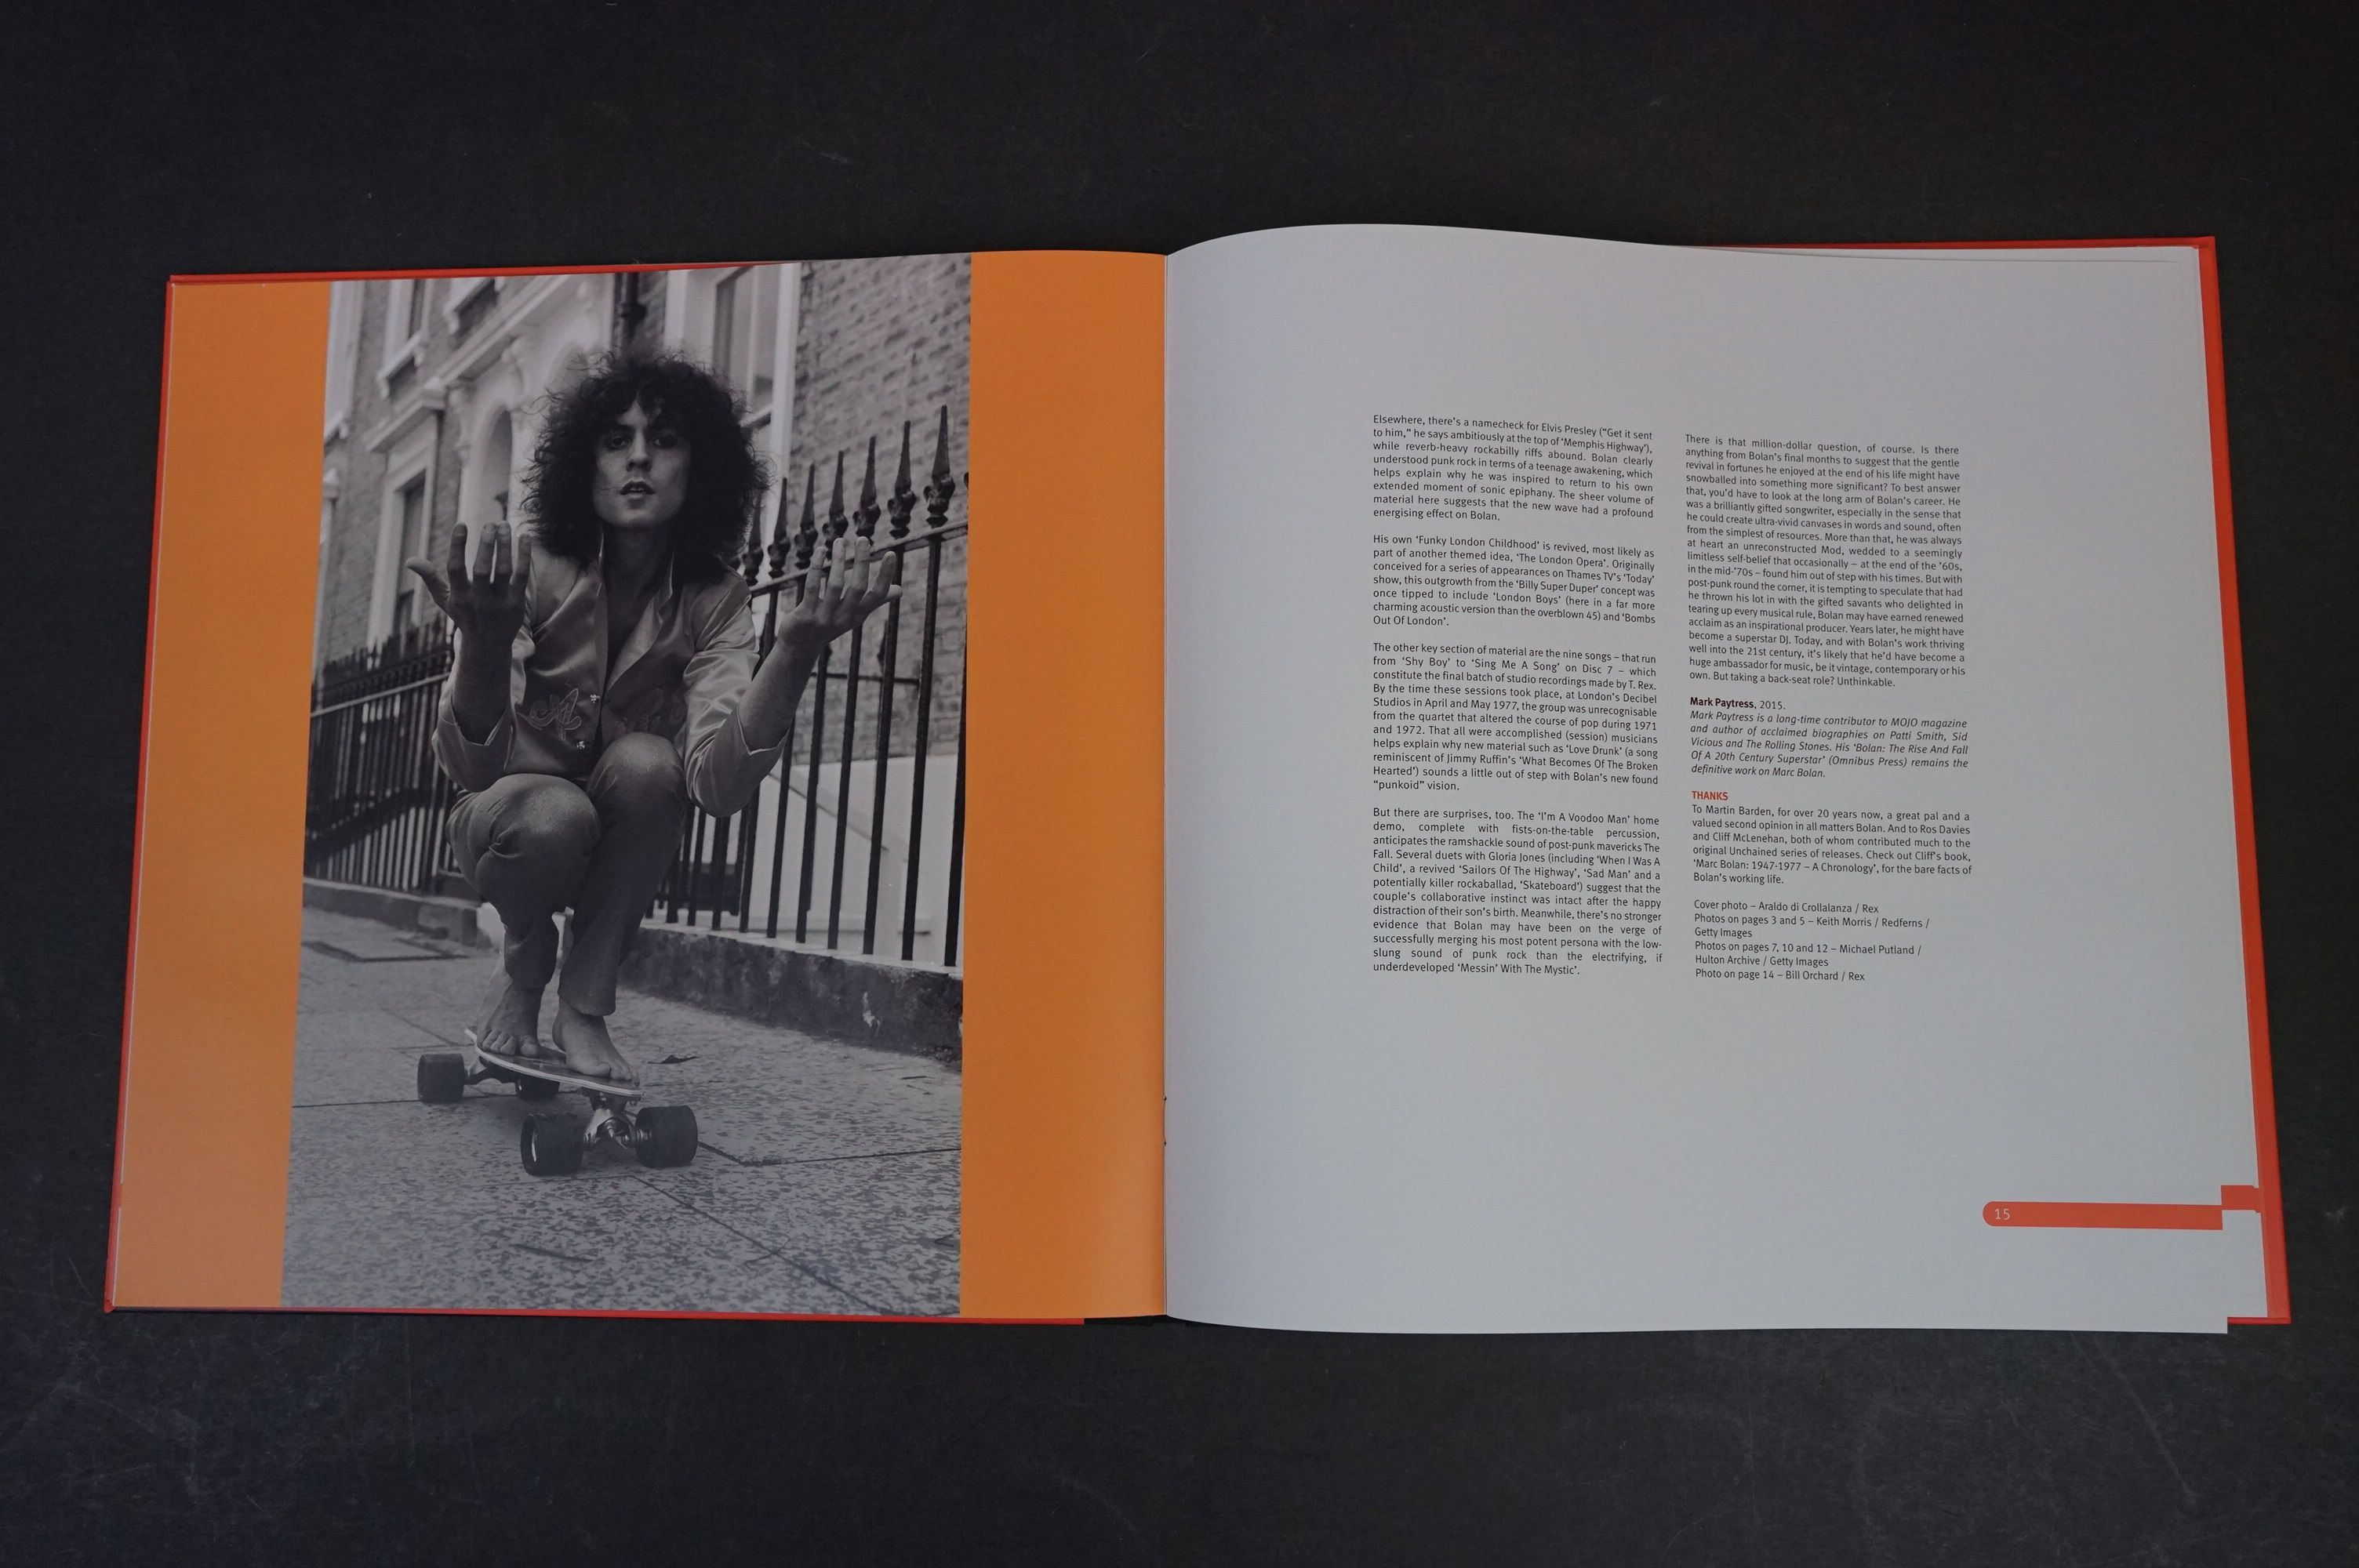 CD - Marc Bolan & T Rex Unchained Home Recordings & Studio Outtakes 8 CD Set UNCHBOX01 ex - Image 3 of 6